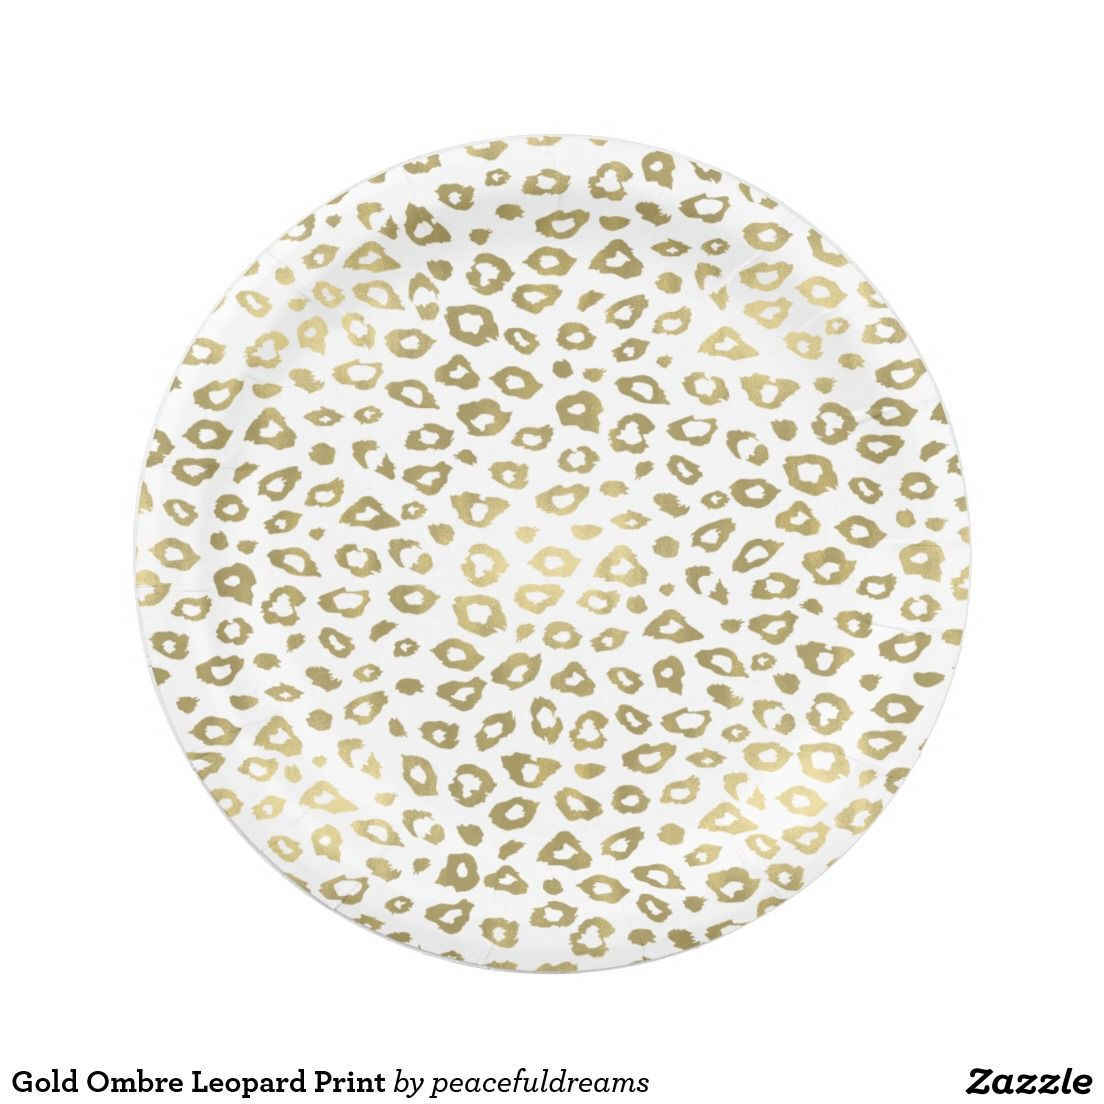 Shop Gold Ombre Leopard Print Paper Plate created by peacefuldreams.  sc 1 st  Pinterest & Gold Ombre Leopard Print 7 Inch Paper Plate | Plates | Pinterest | Ombre